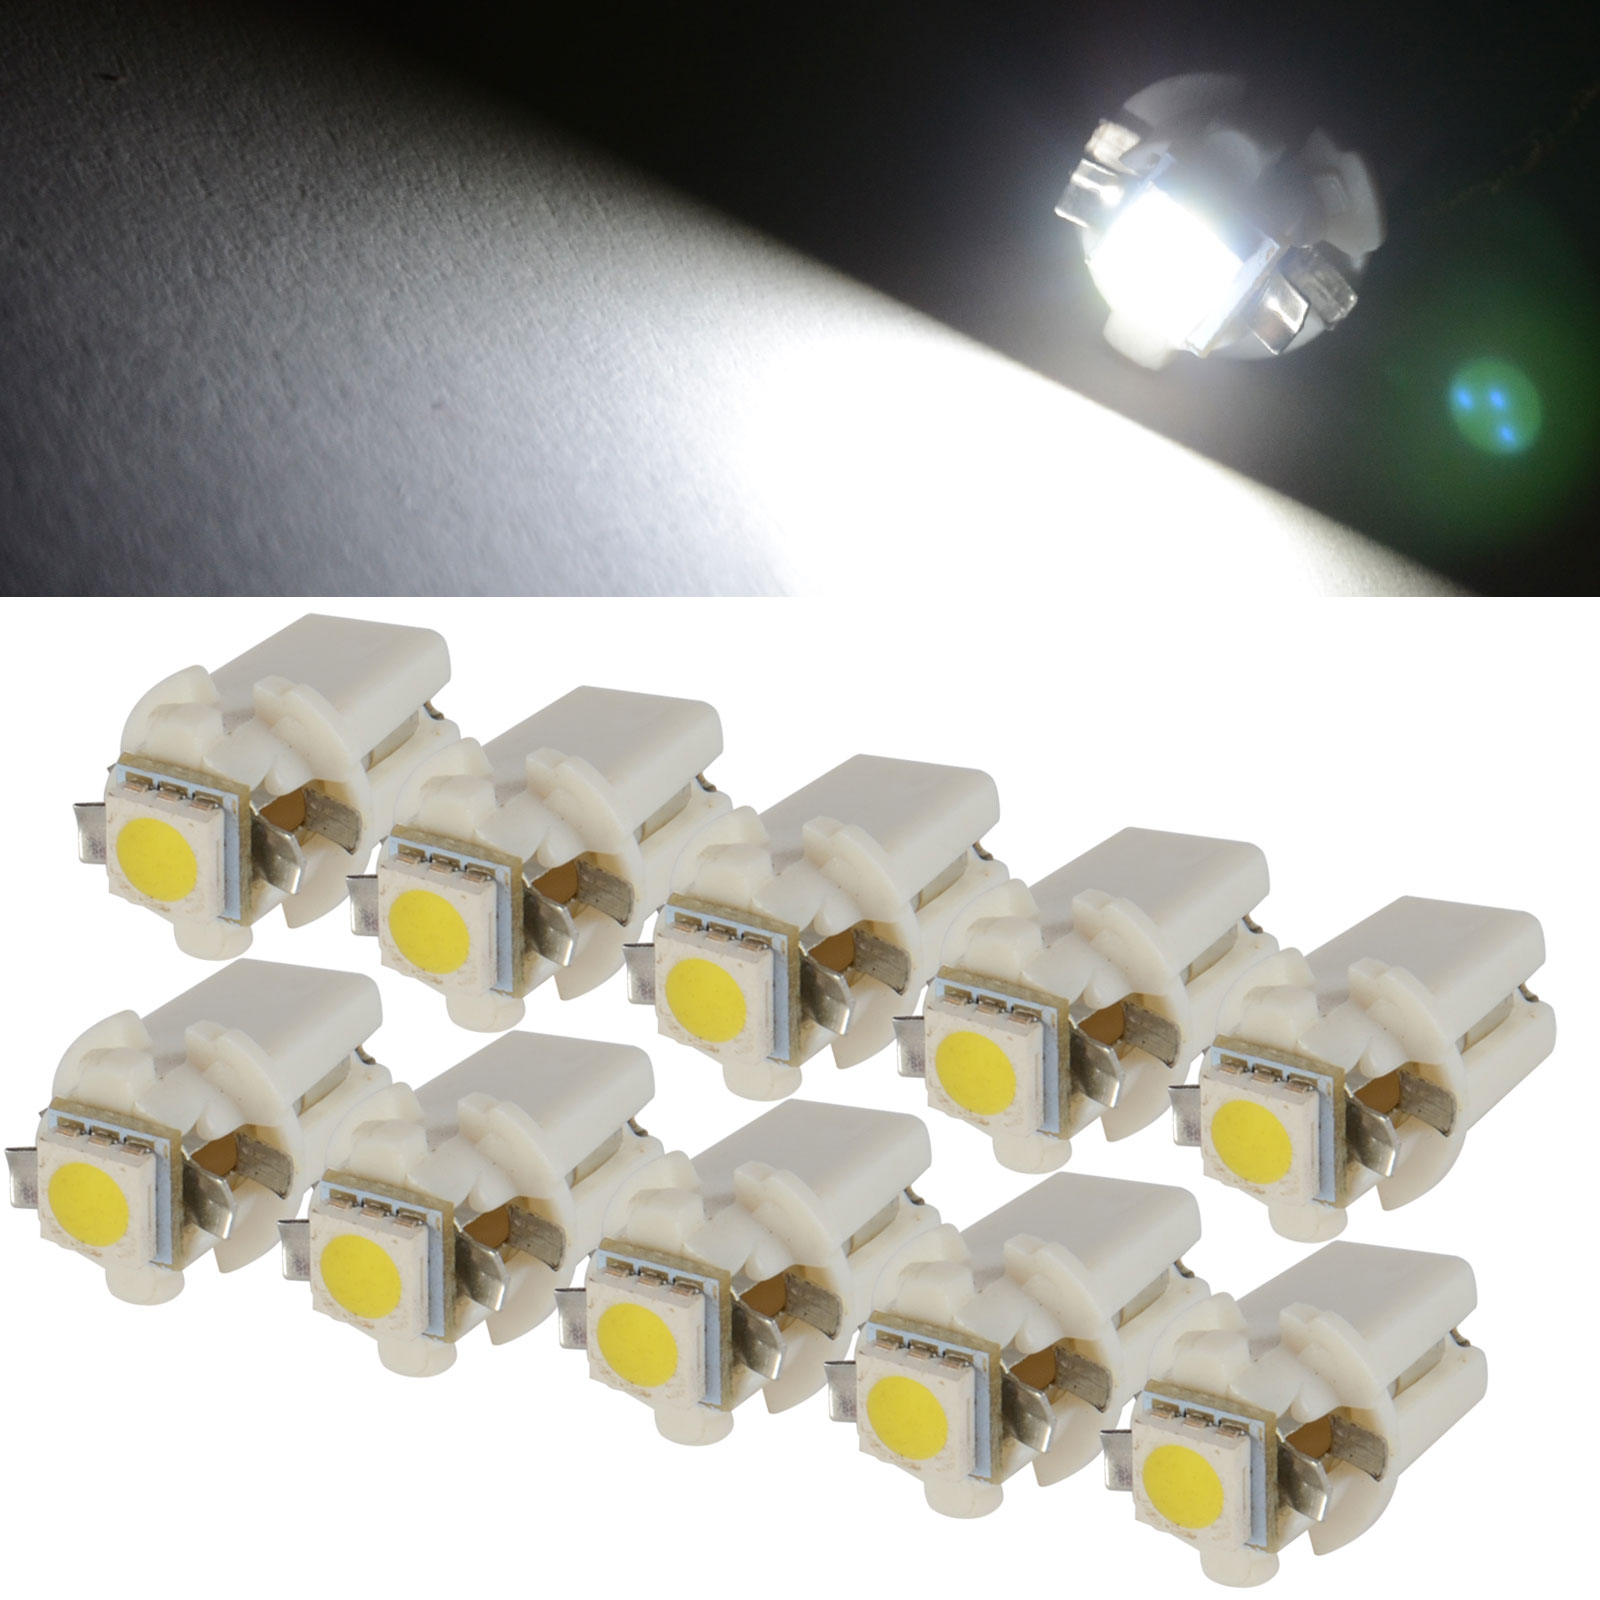 10PCS White T5 B8.3D 5050 1SMD LED Car Dashboard Panel Dash Wedge Side Light Bulb Auto Indicator Lamp 6000K DC 12 V uxcell 10 pcs ice blue 3020 smd led vehicles car dashboard dash light lamp internal